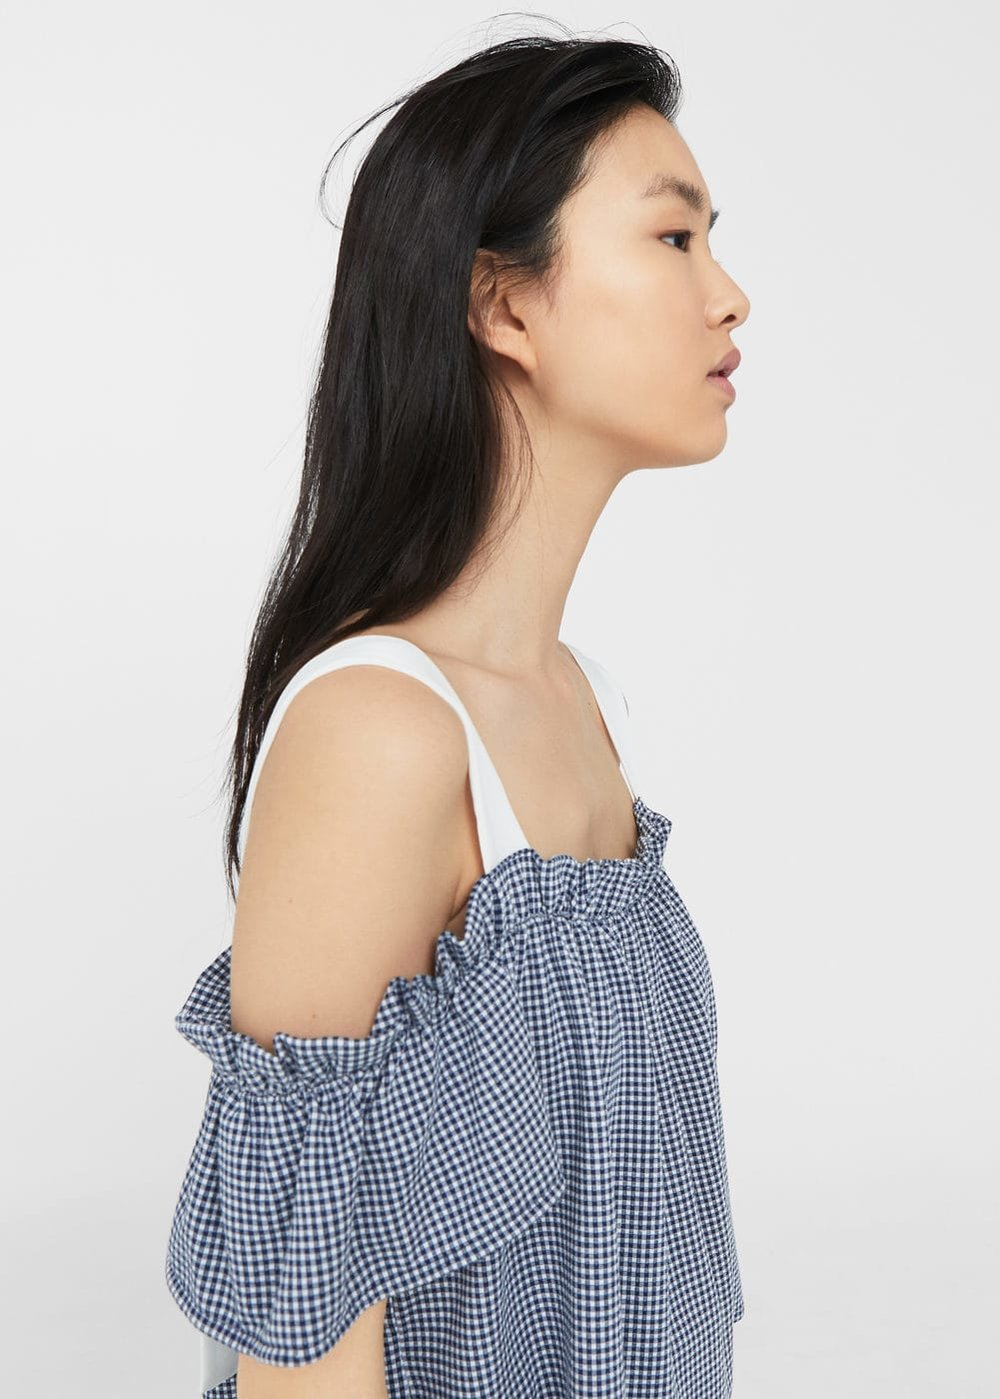 Gingham off-shoulder top, £15.99